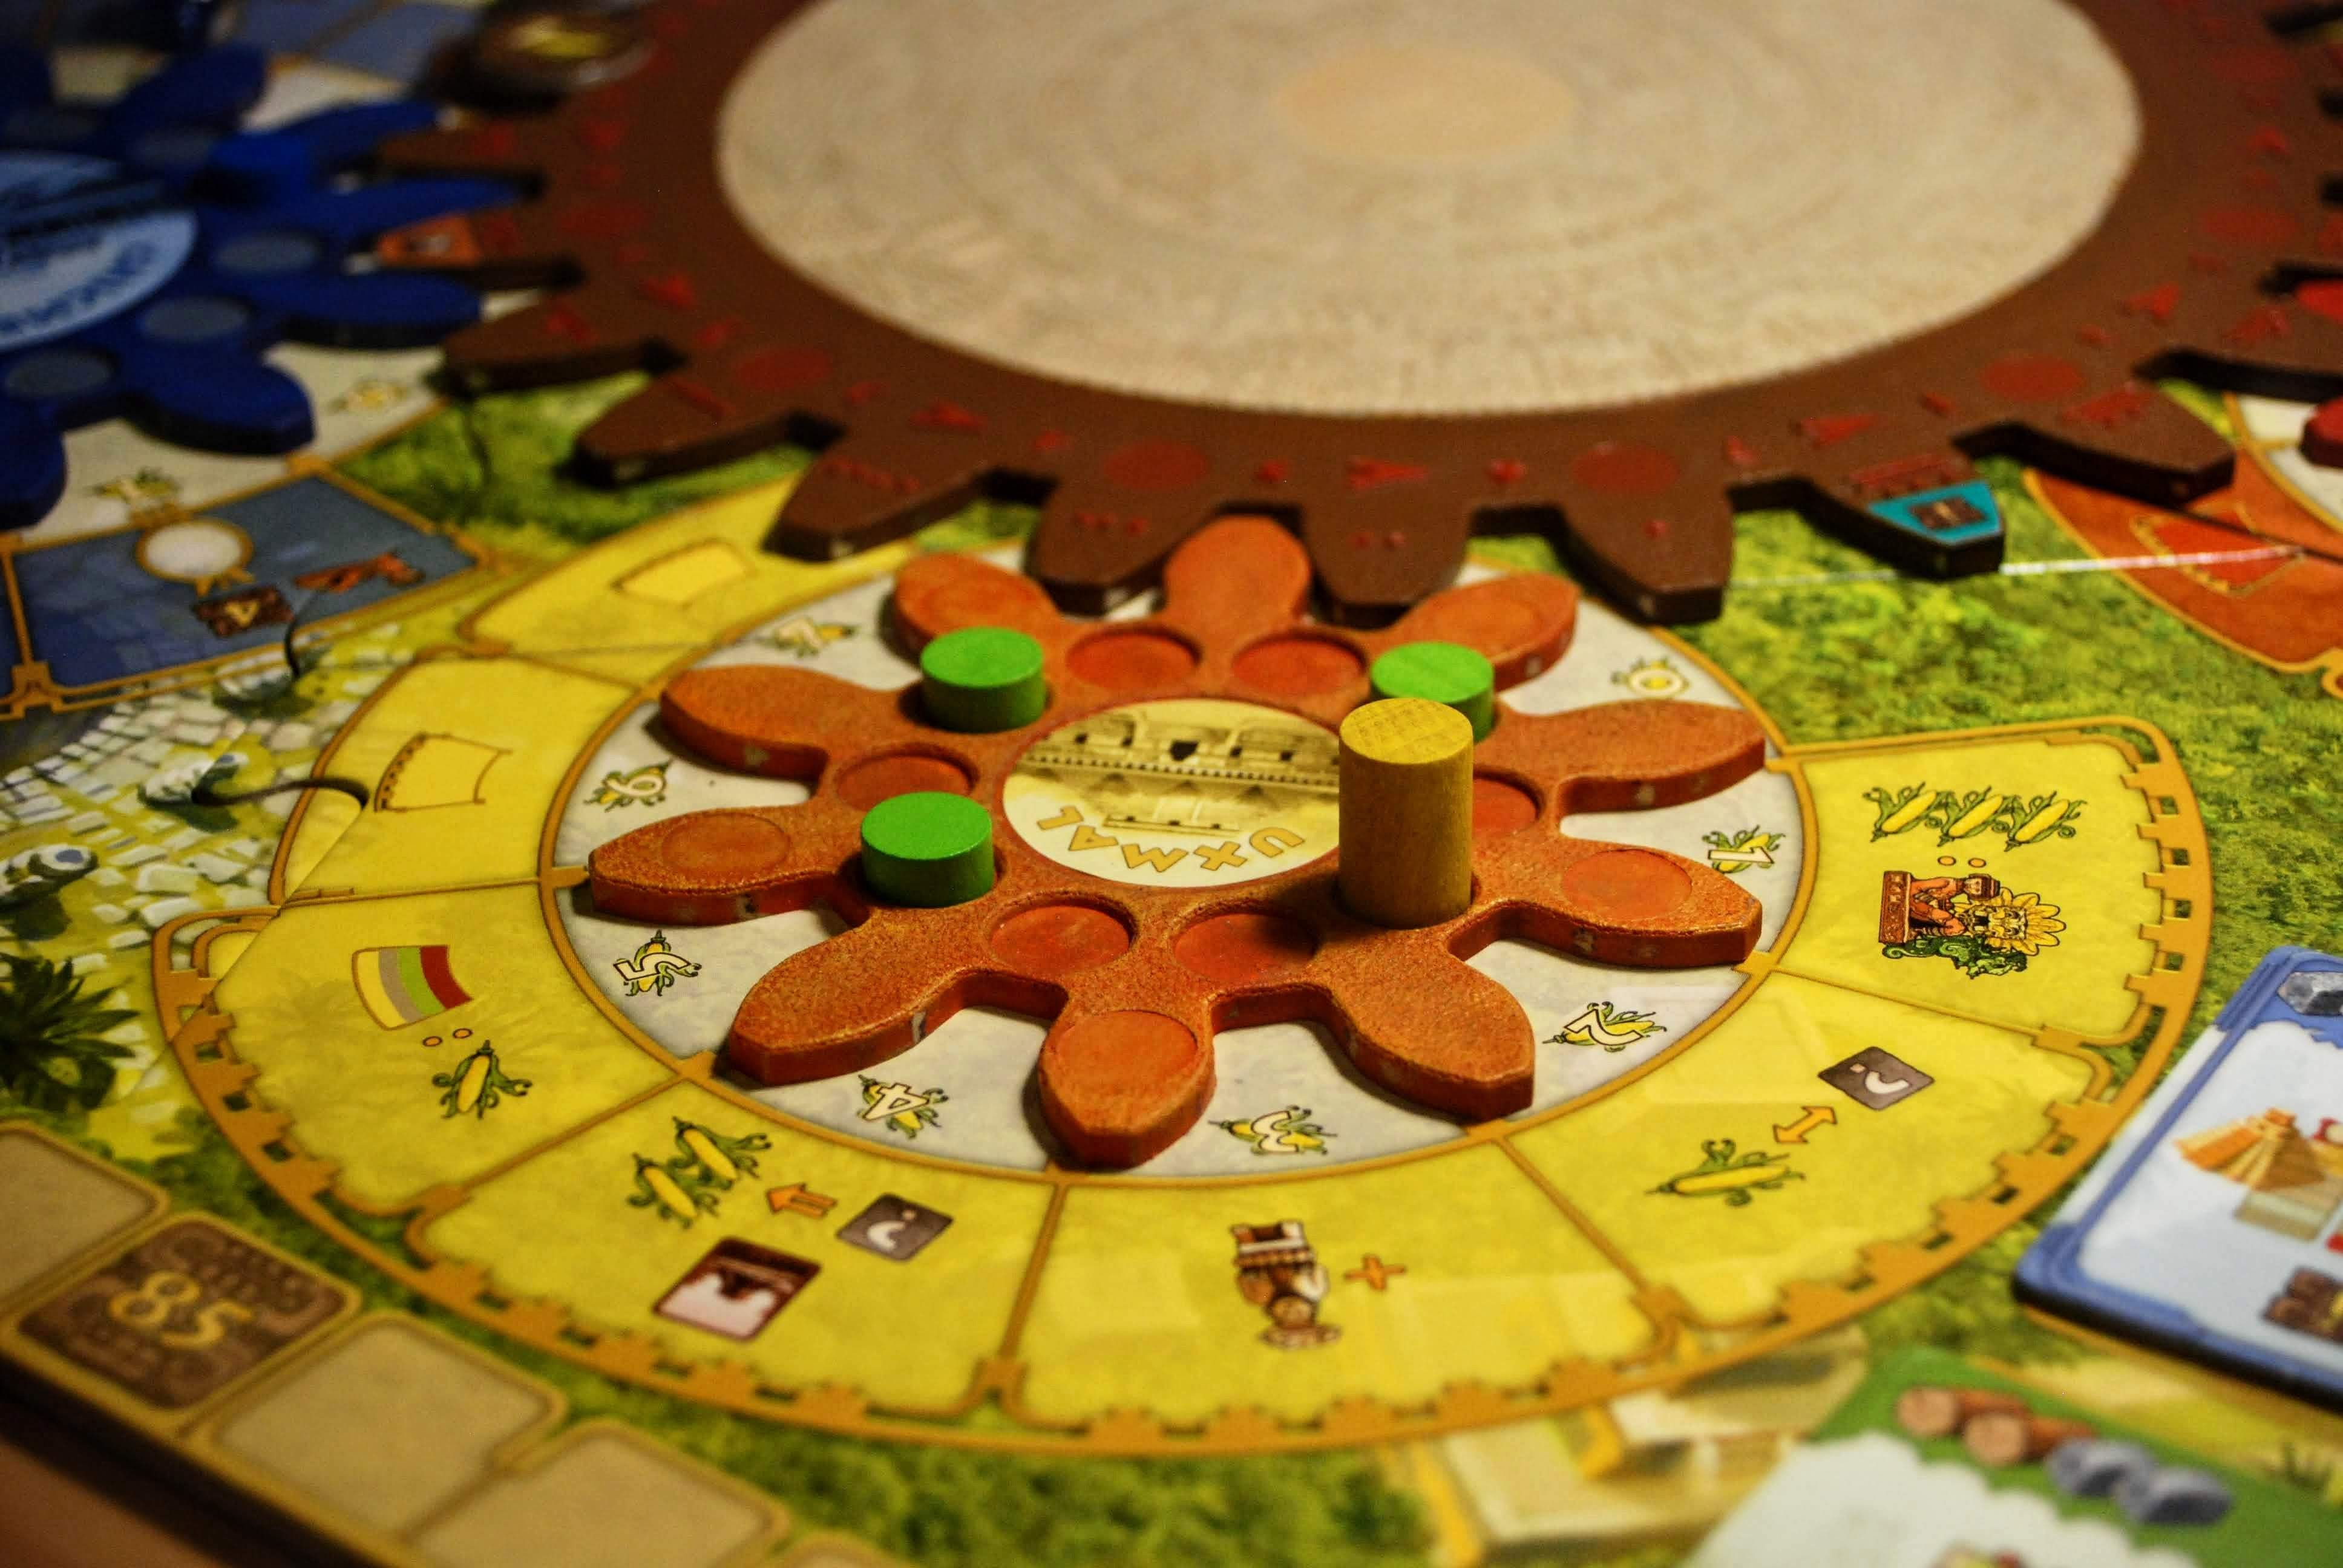 Tzolk'in The Mayan Calendar Worker Placement Board Game